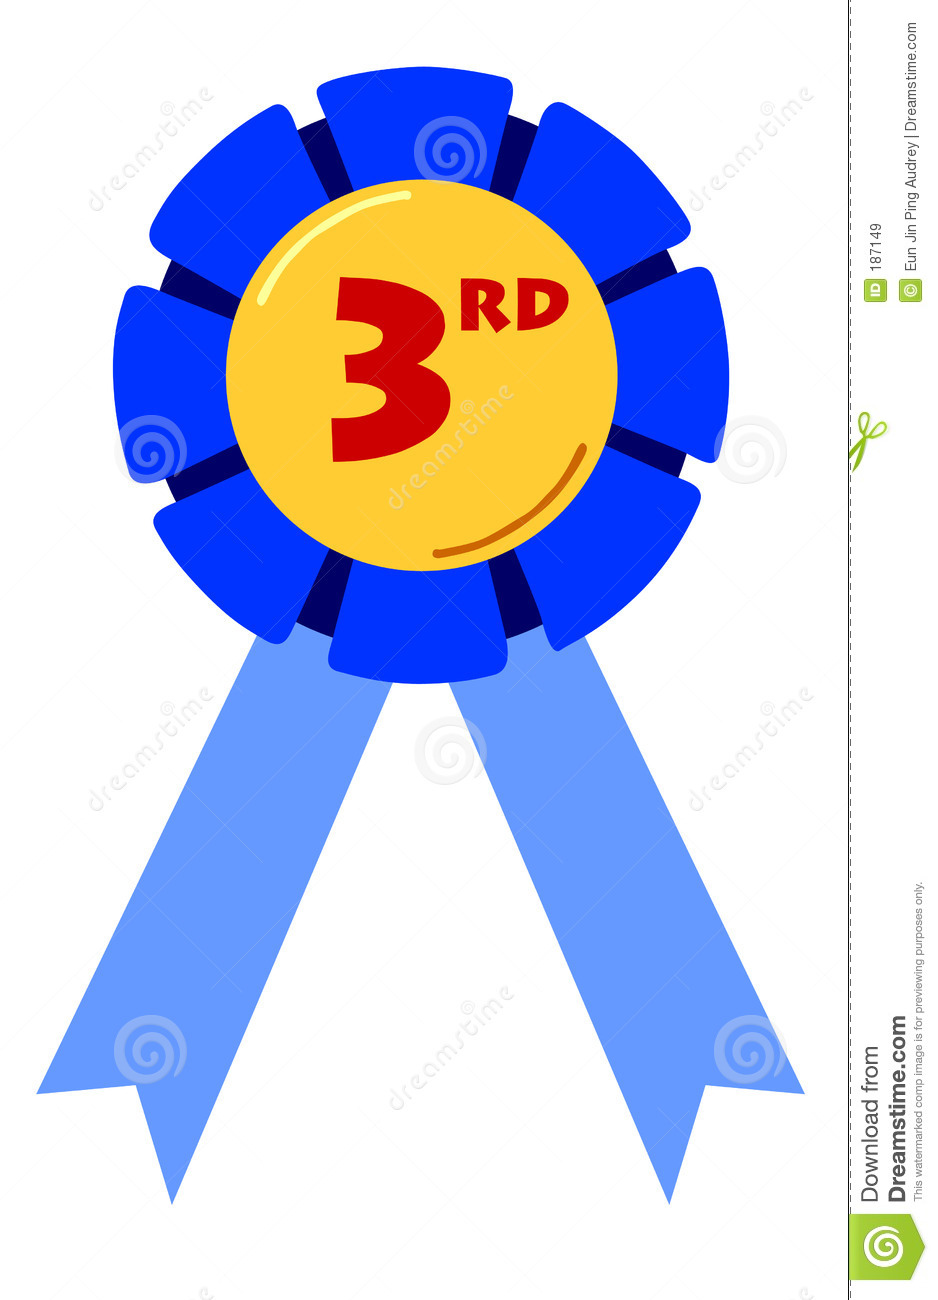 3rd Place Ribbon Clipart.